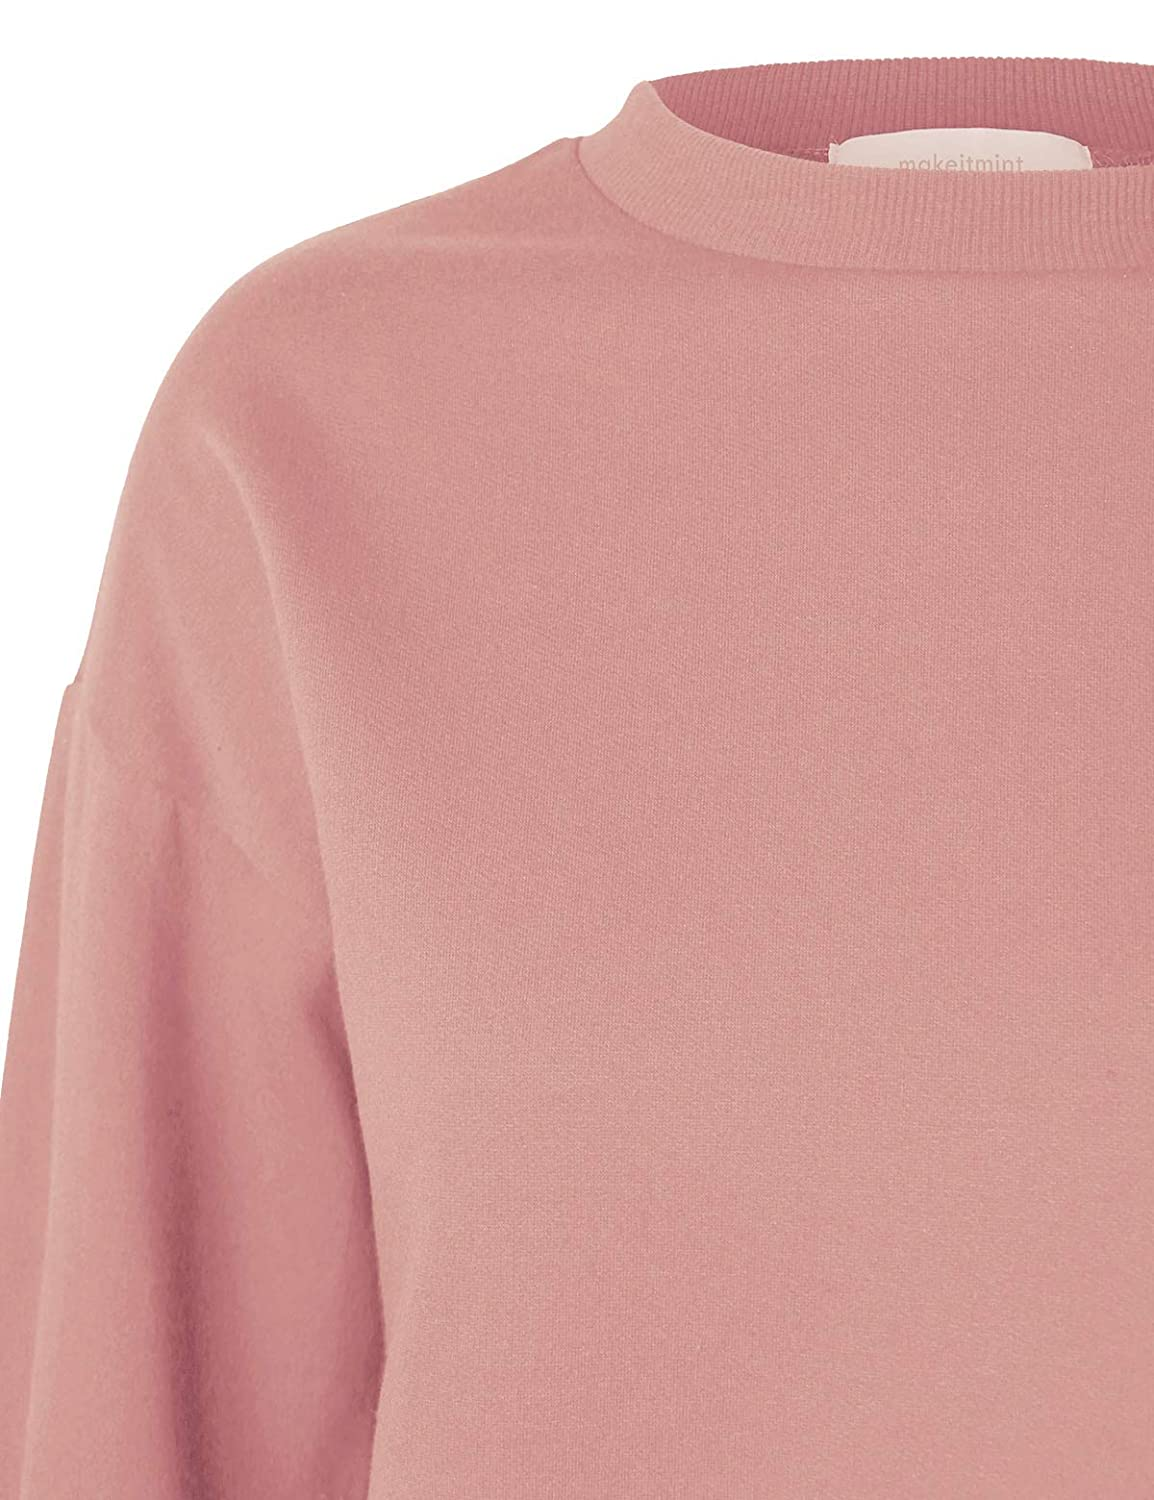 makeitmint Womens Must Have Oversized Soft French Terry High Low Sweatshirt Top YIL0020-ROSE-MED